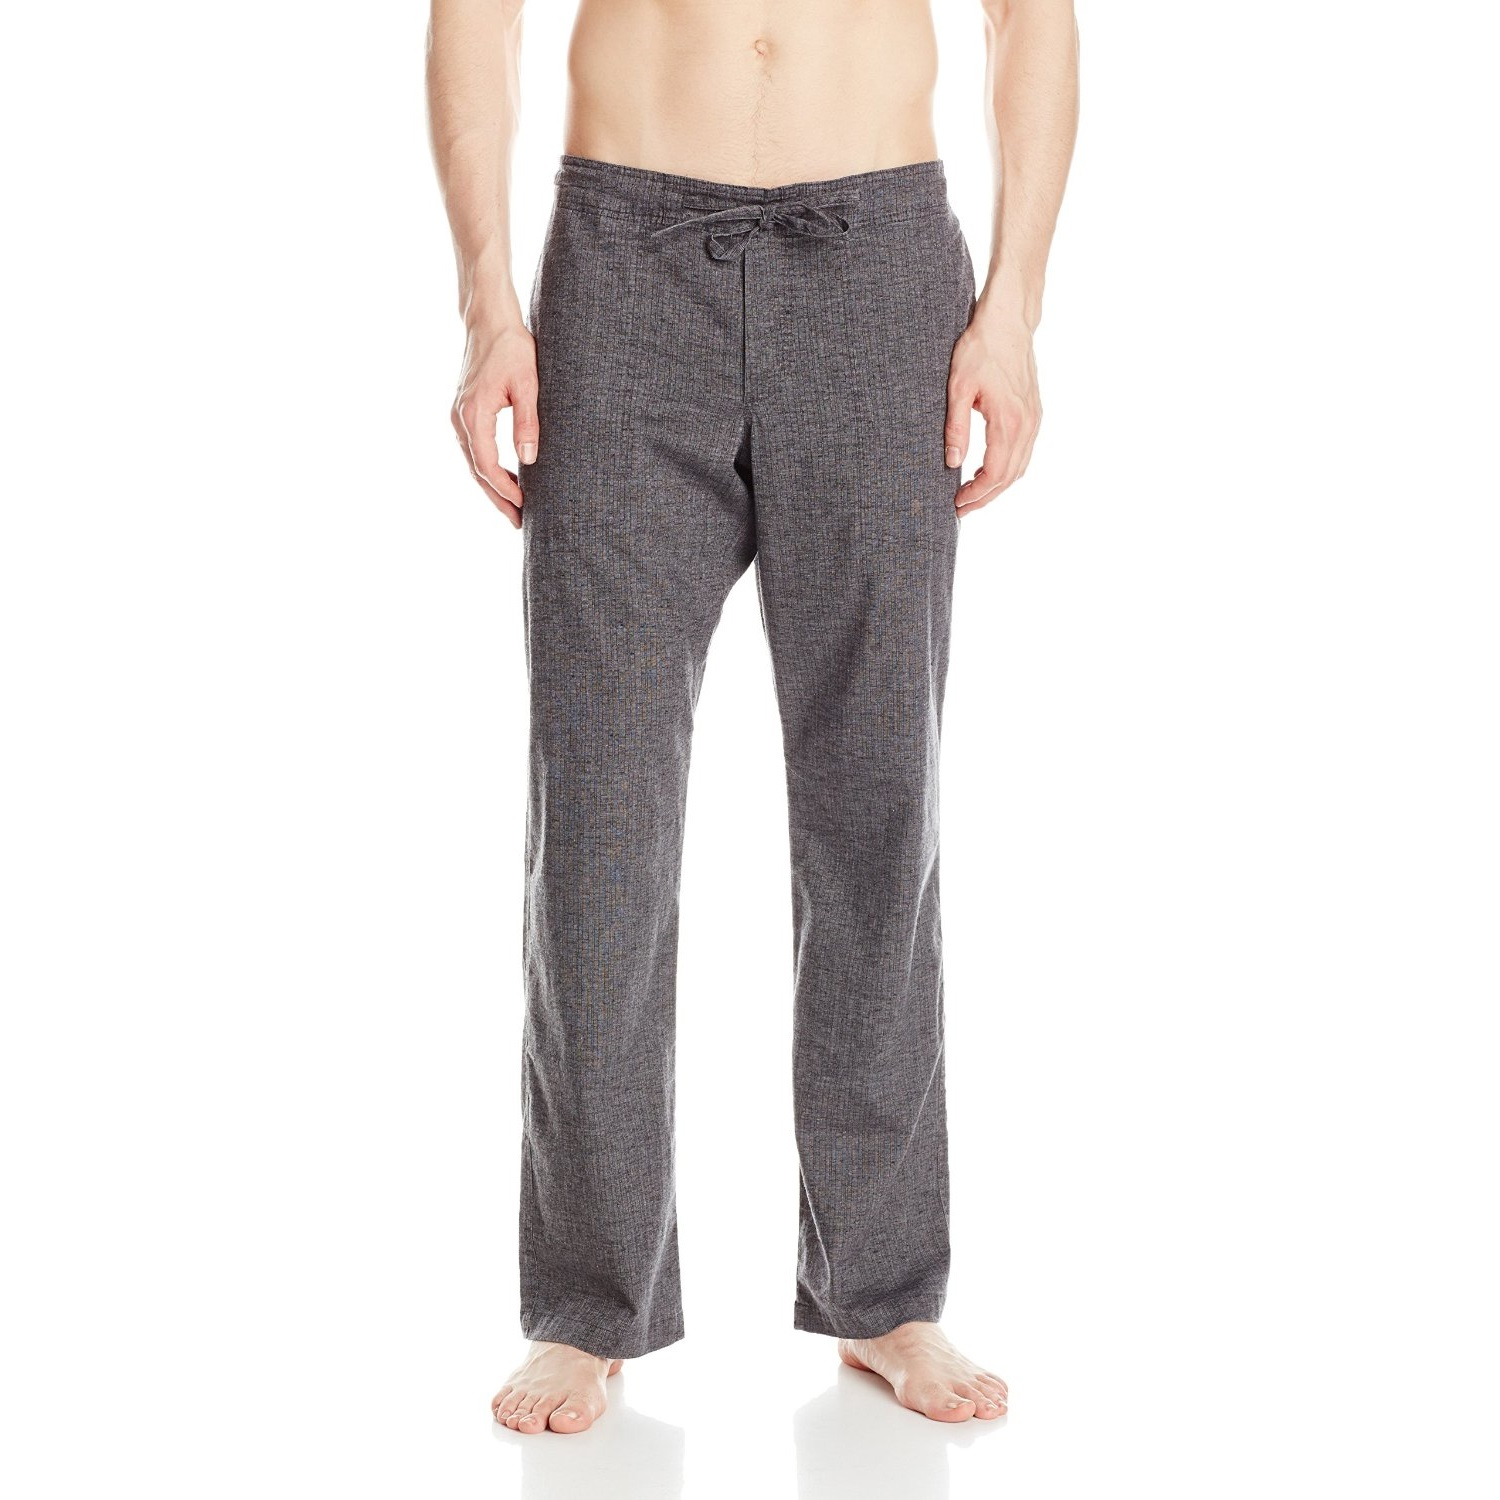 prAna Men's Sutra Yoga Pants